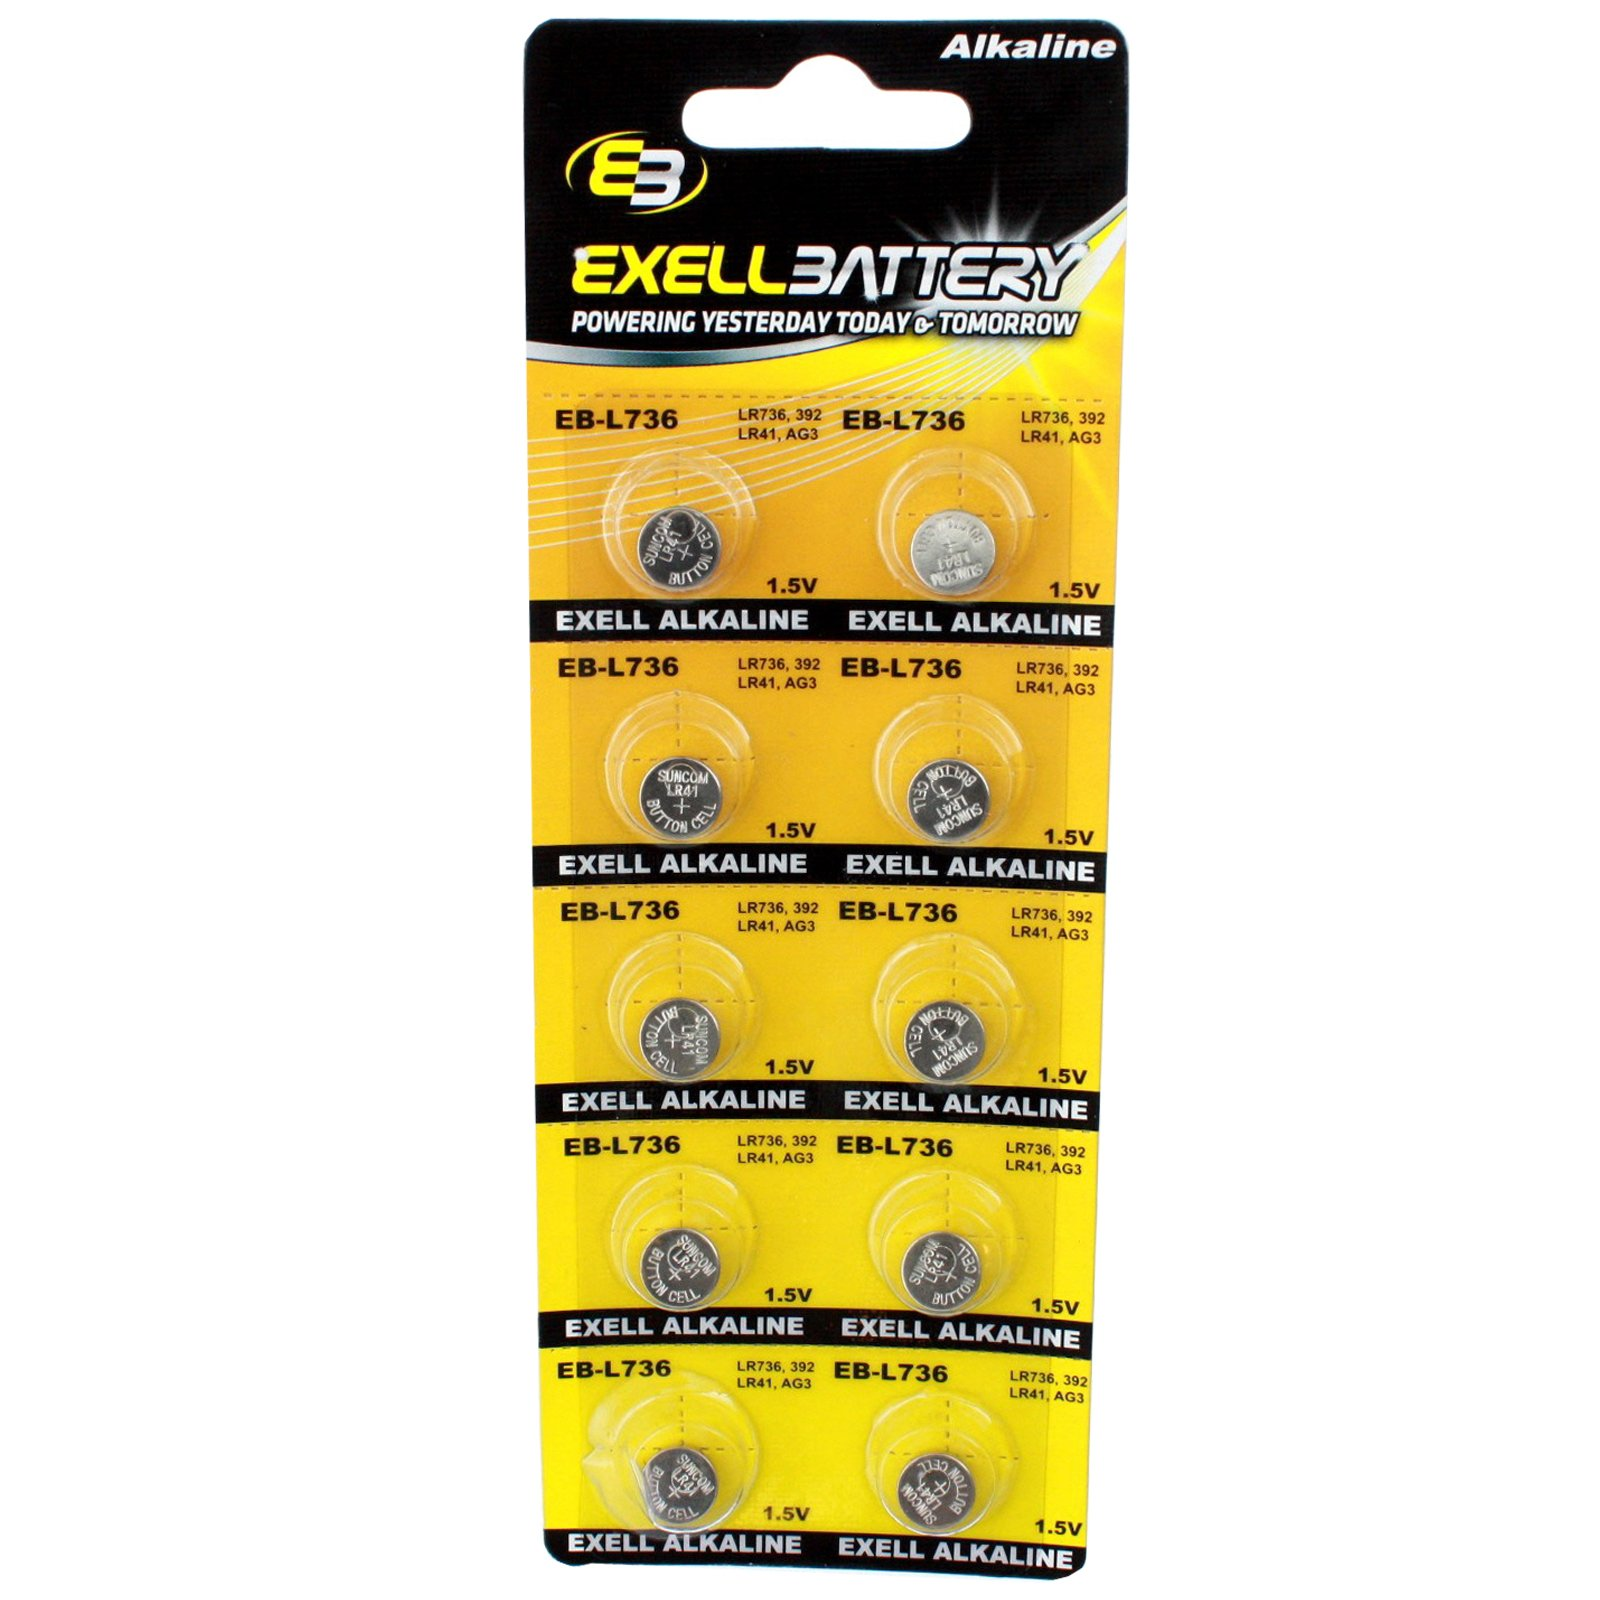 Cheap 10pk Exell EB-L736 Alkaline 1.5V Watch Battery Replaces AG3 LR41 392 Black Friday & Cyber Monday 2019